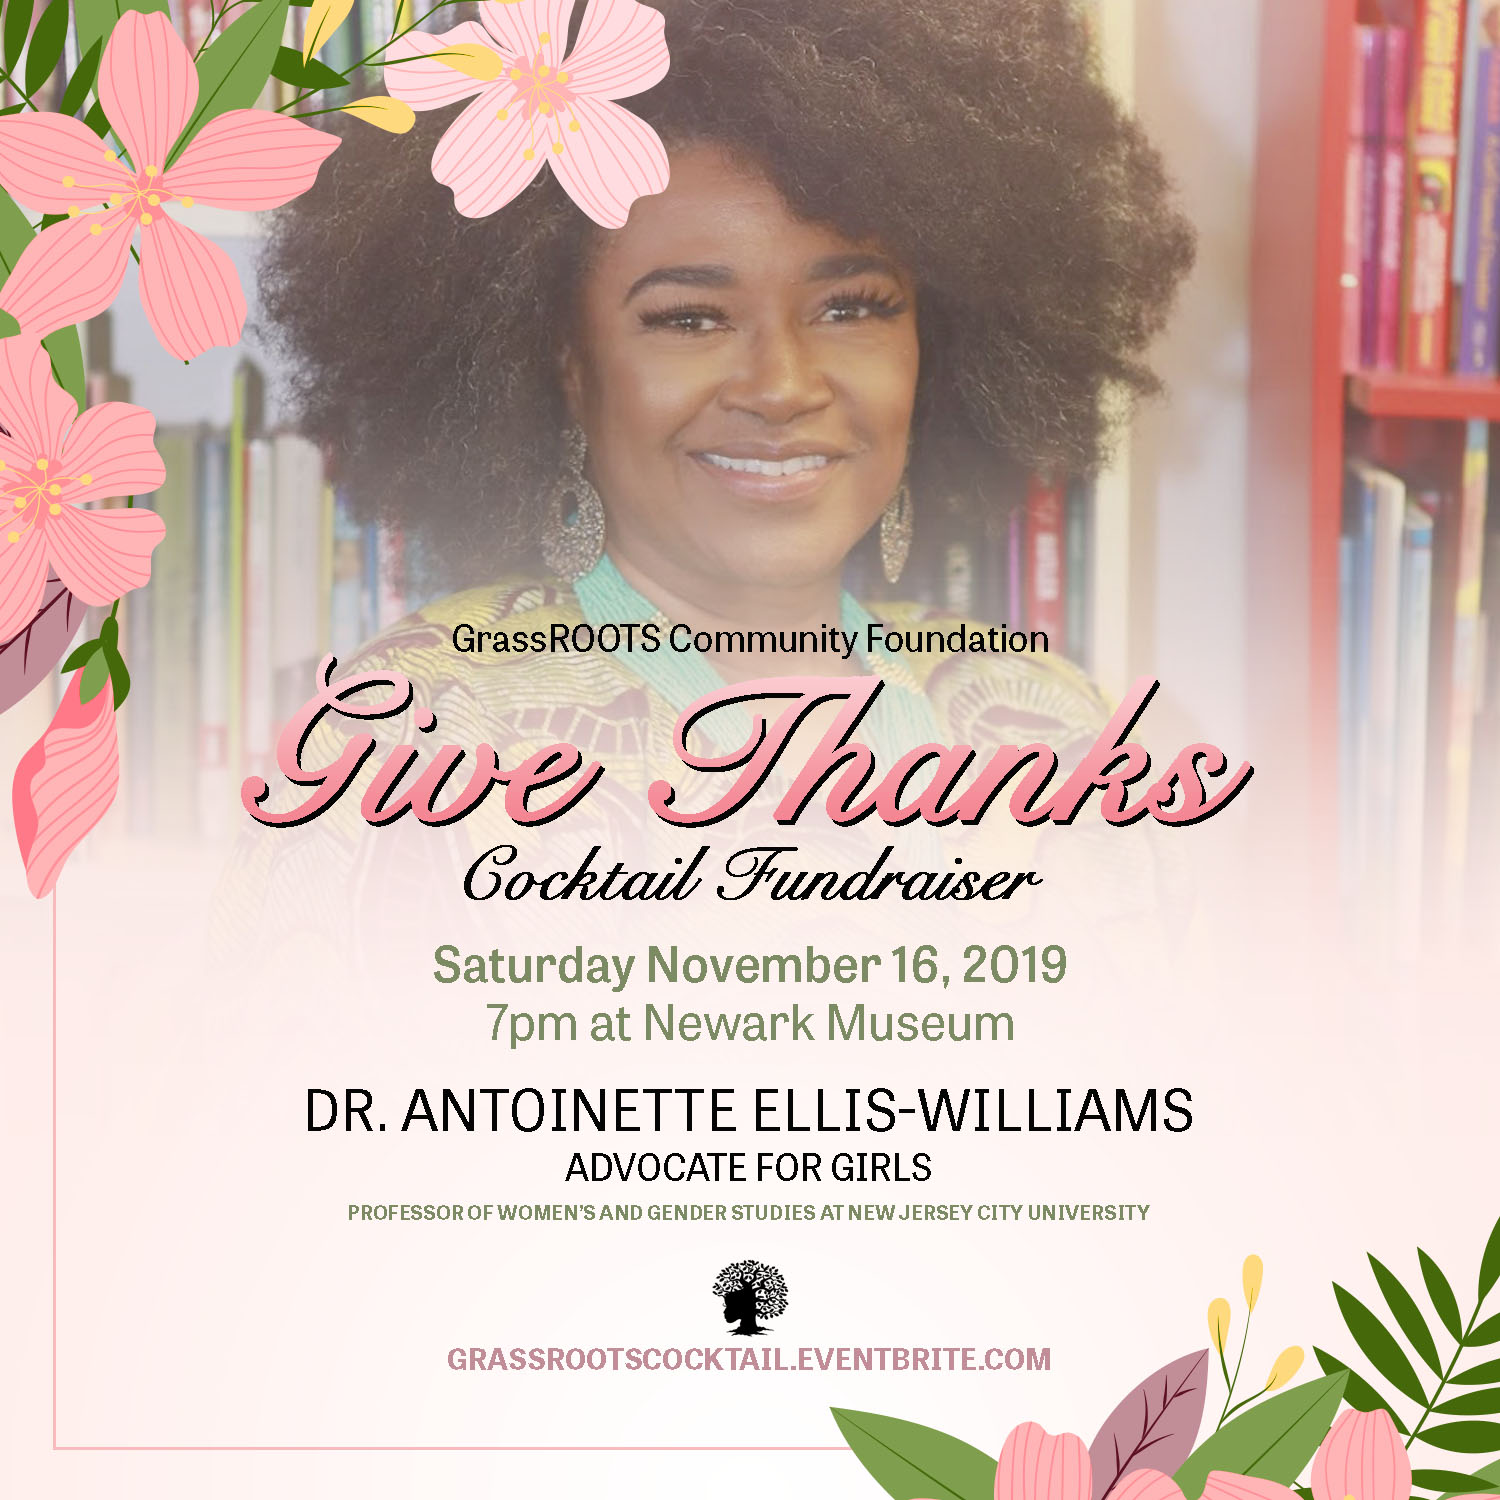 Dr. Antoinette Antoinette Ellis-Williams